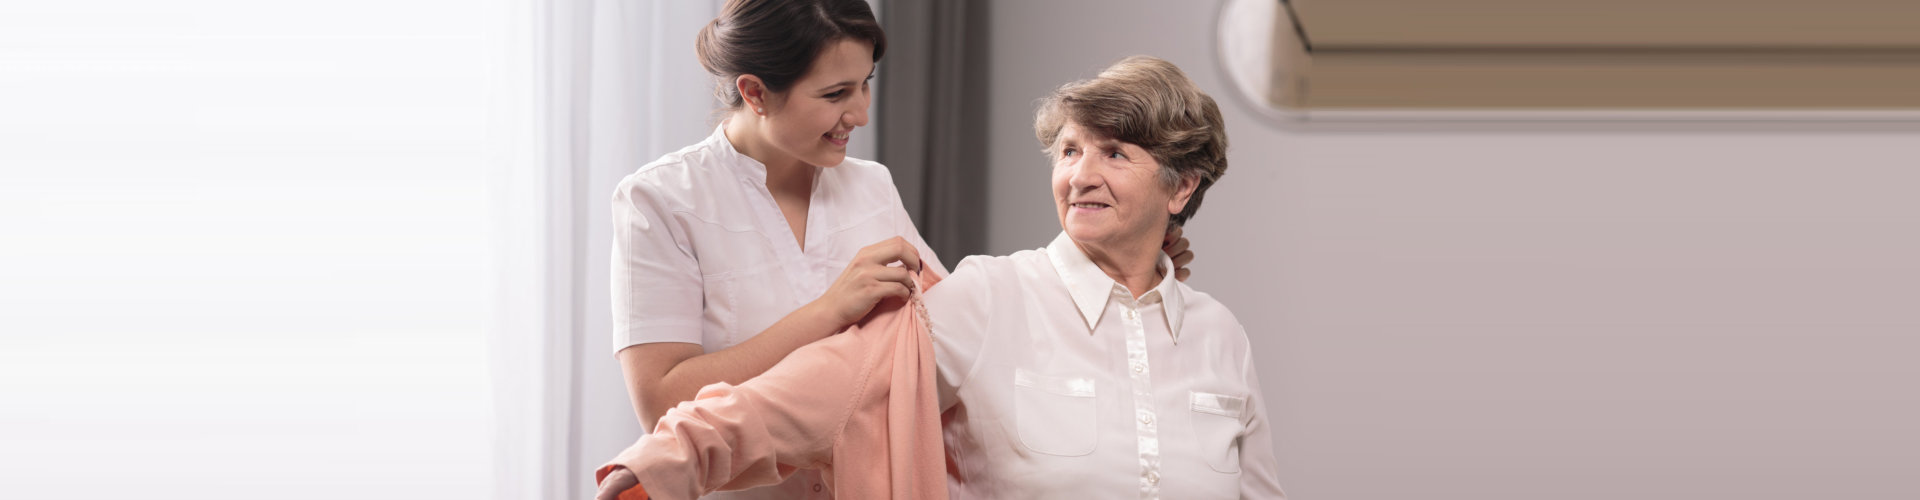 caregiver assisting elder woman on wearing a polo shirt concept